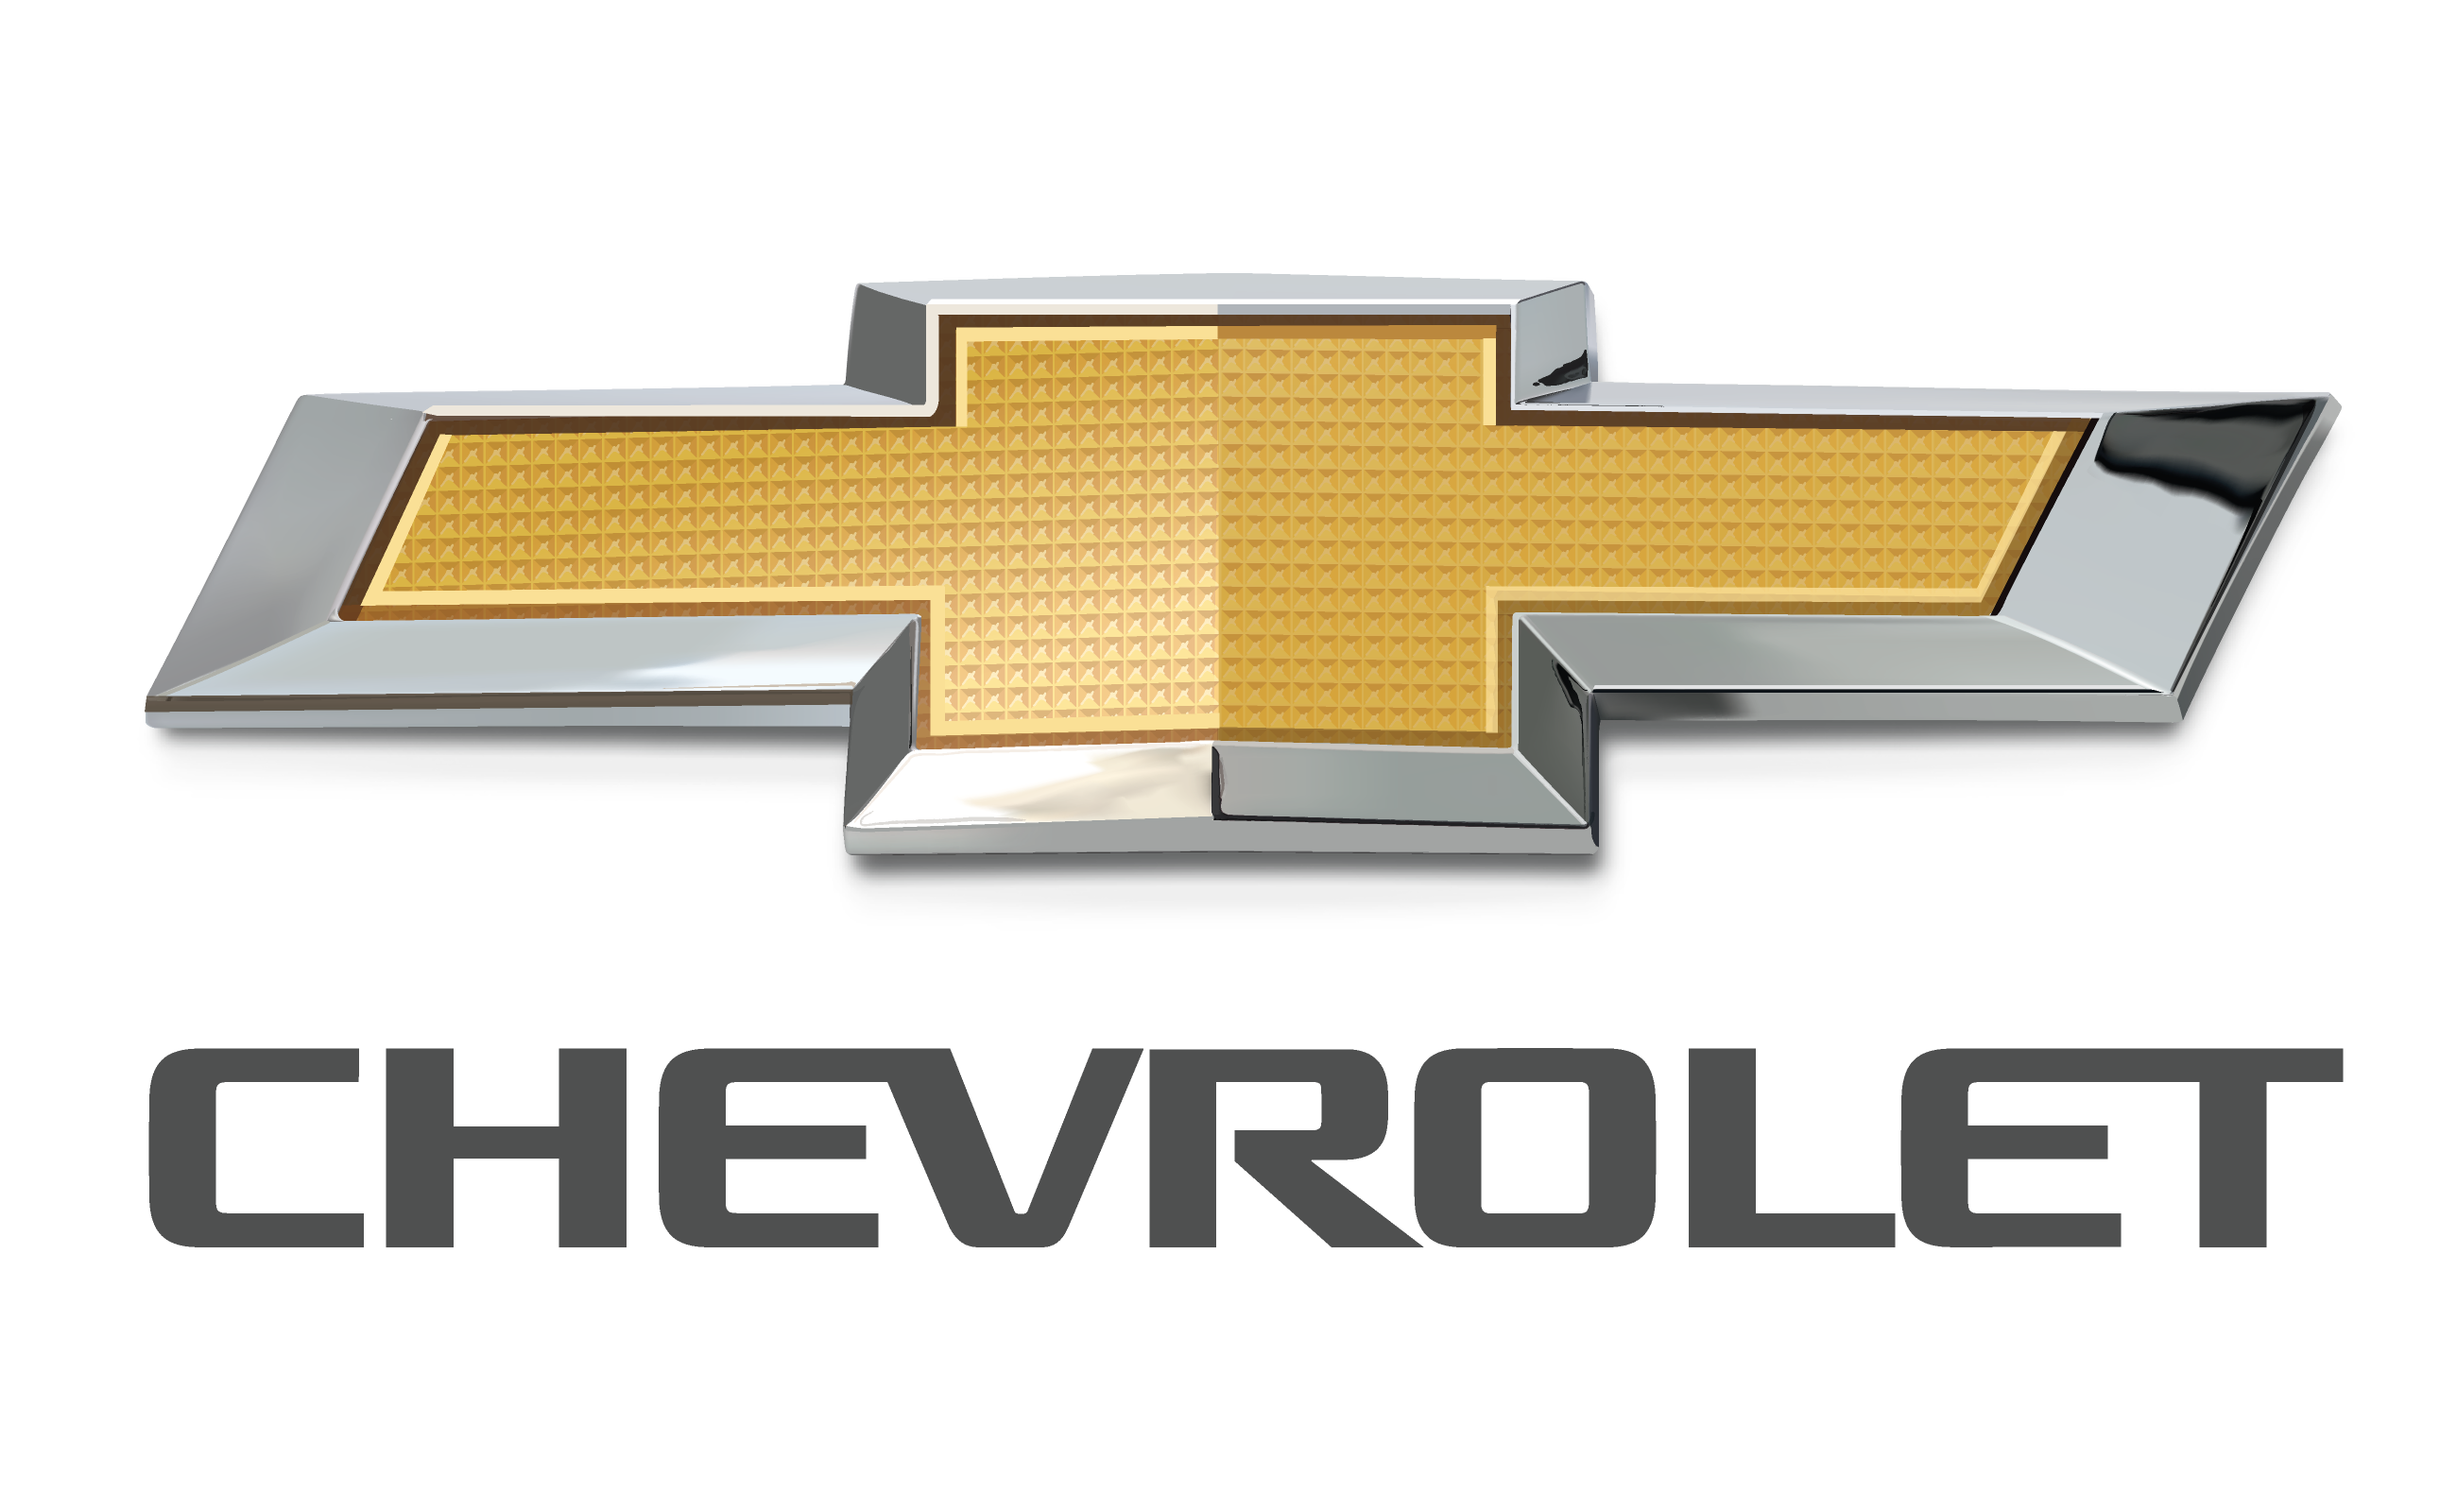 Chevy logo Wallpaper